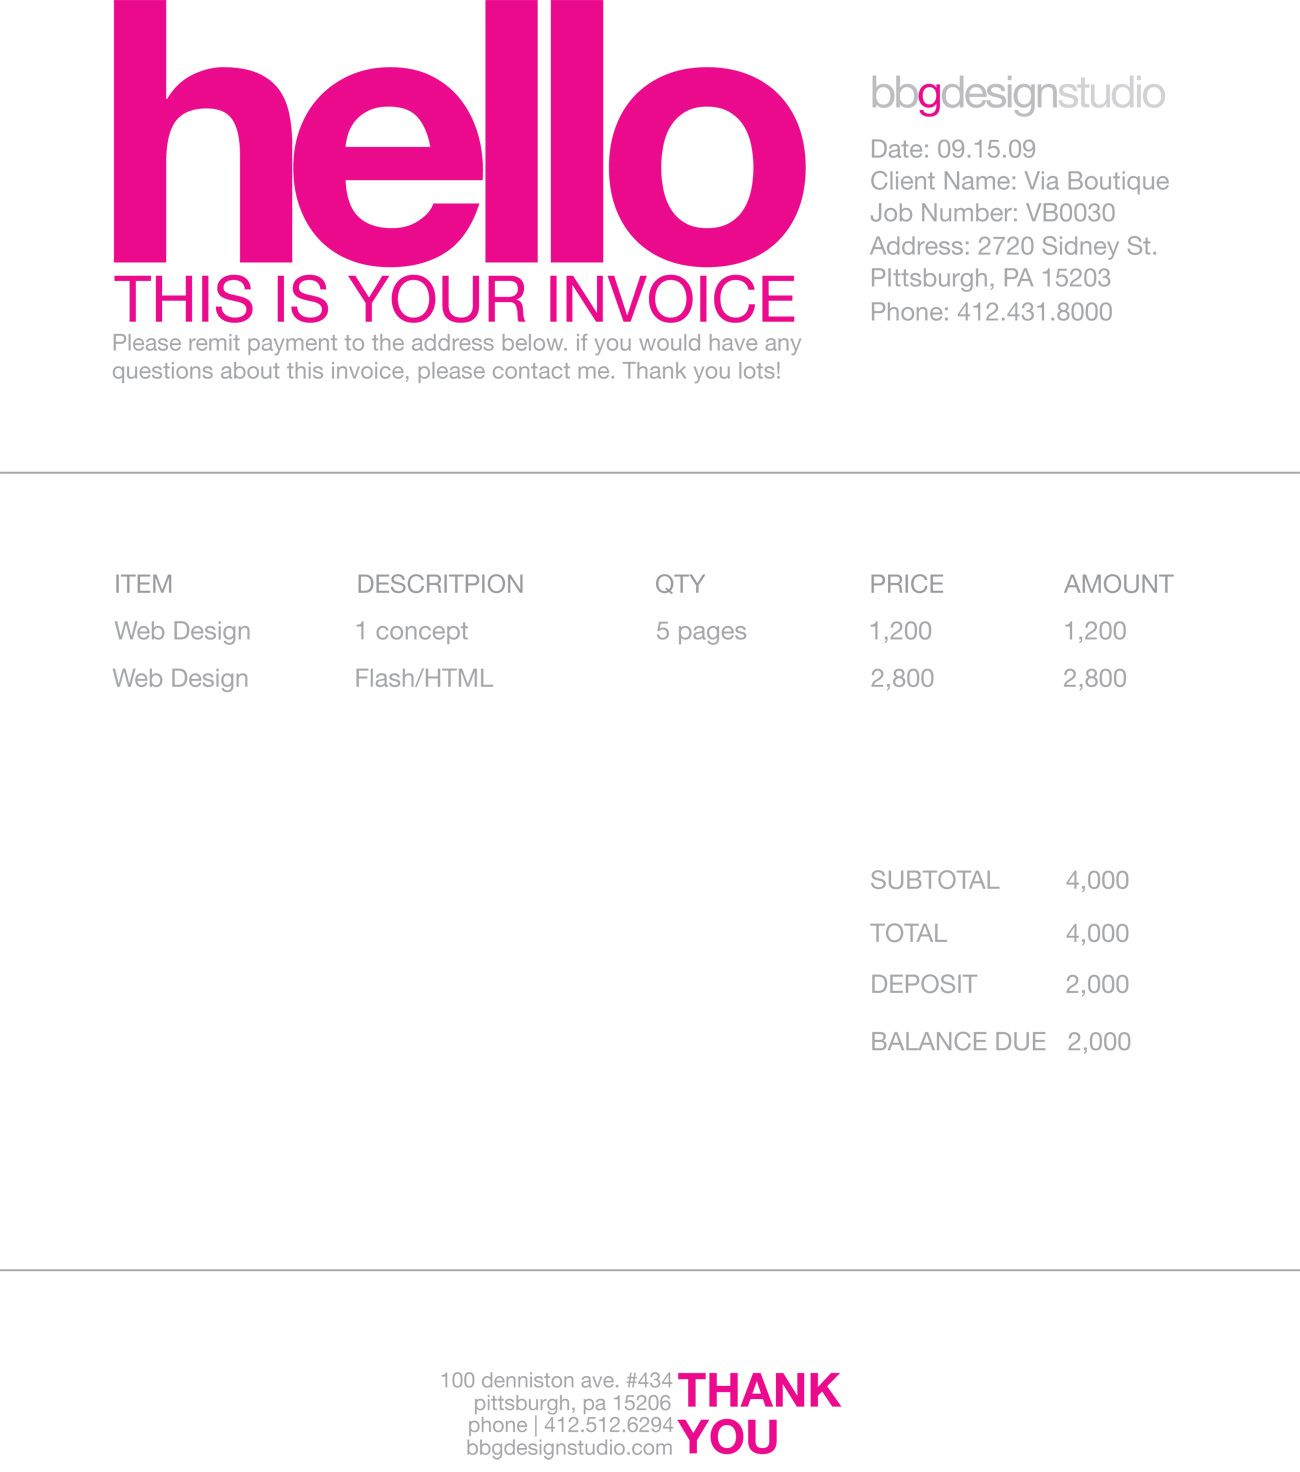 Hucareus  Wonderful  Images About Invoice Design On Pinterest With Foxy Tnt E Invoice Besides A Invoice Furthermore Project Invoicing With Alluring Invoice Rejection Letter Also Invoice Template For Freelance Work In Addition Payment Due Upon Receipt Invoice And Freelance Artist Invoice As Well As Samples Of An Invoice Additionally Computer Invoice Software From Pinterestcom With Hucareus  Foxy  Images About Invoice Design On Pinterest With Alluring Tnt E Invoice Besides A Invoice Furthermore Project Invoicing And Wonderful Invoice Rejection Letter Also Invoice Template For Freelance Work In Addition Payment Due Upon Receipt Invoice From Pinterestcom